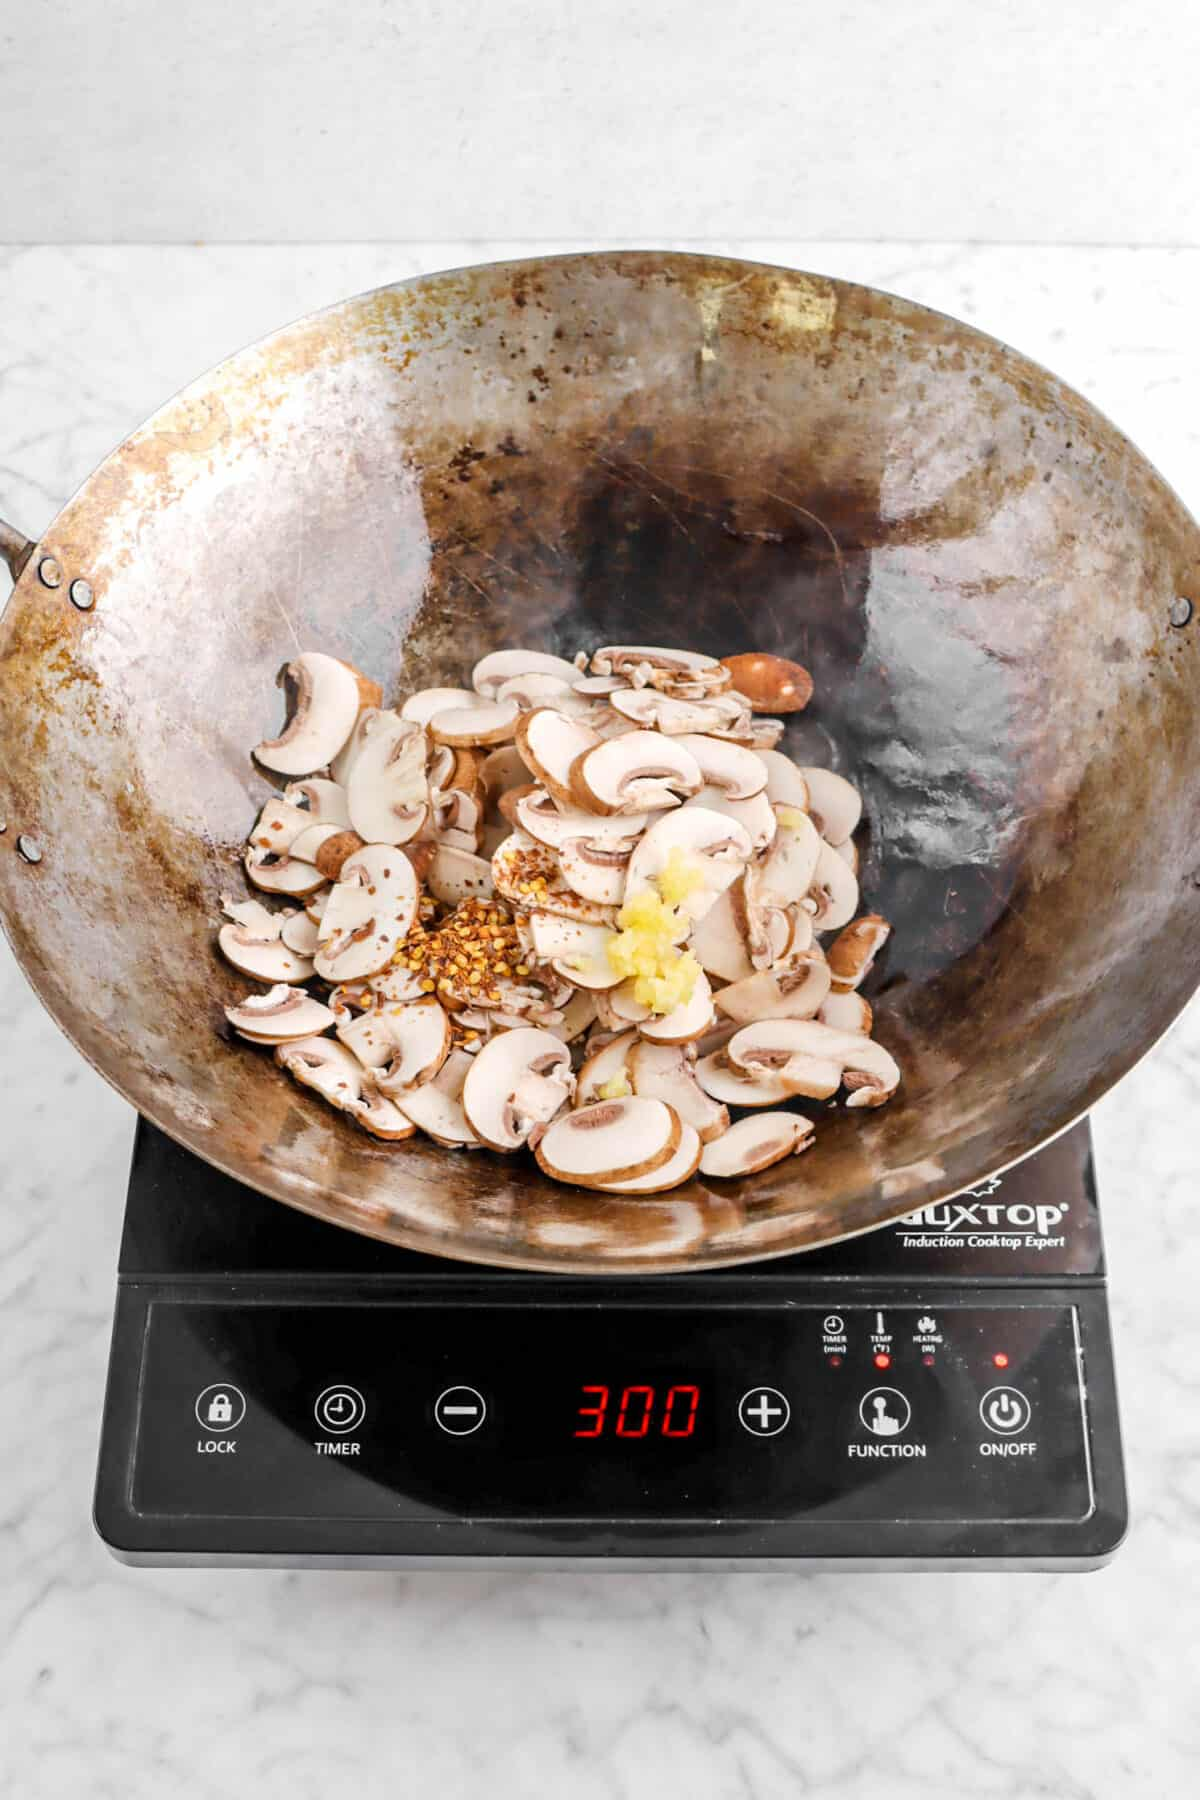 sliced mushrooms, red pepper flakes, and garlic in a wok